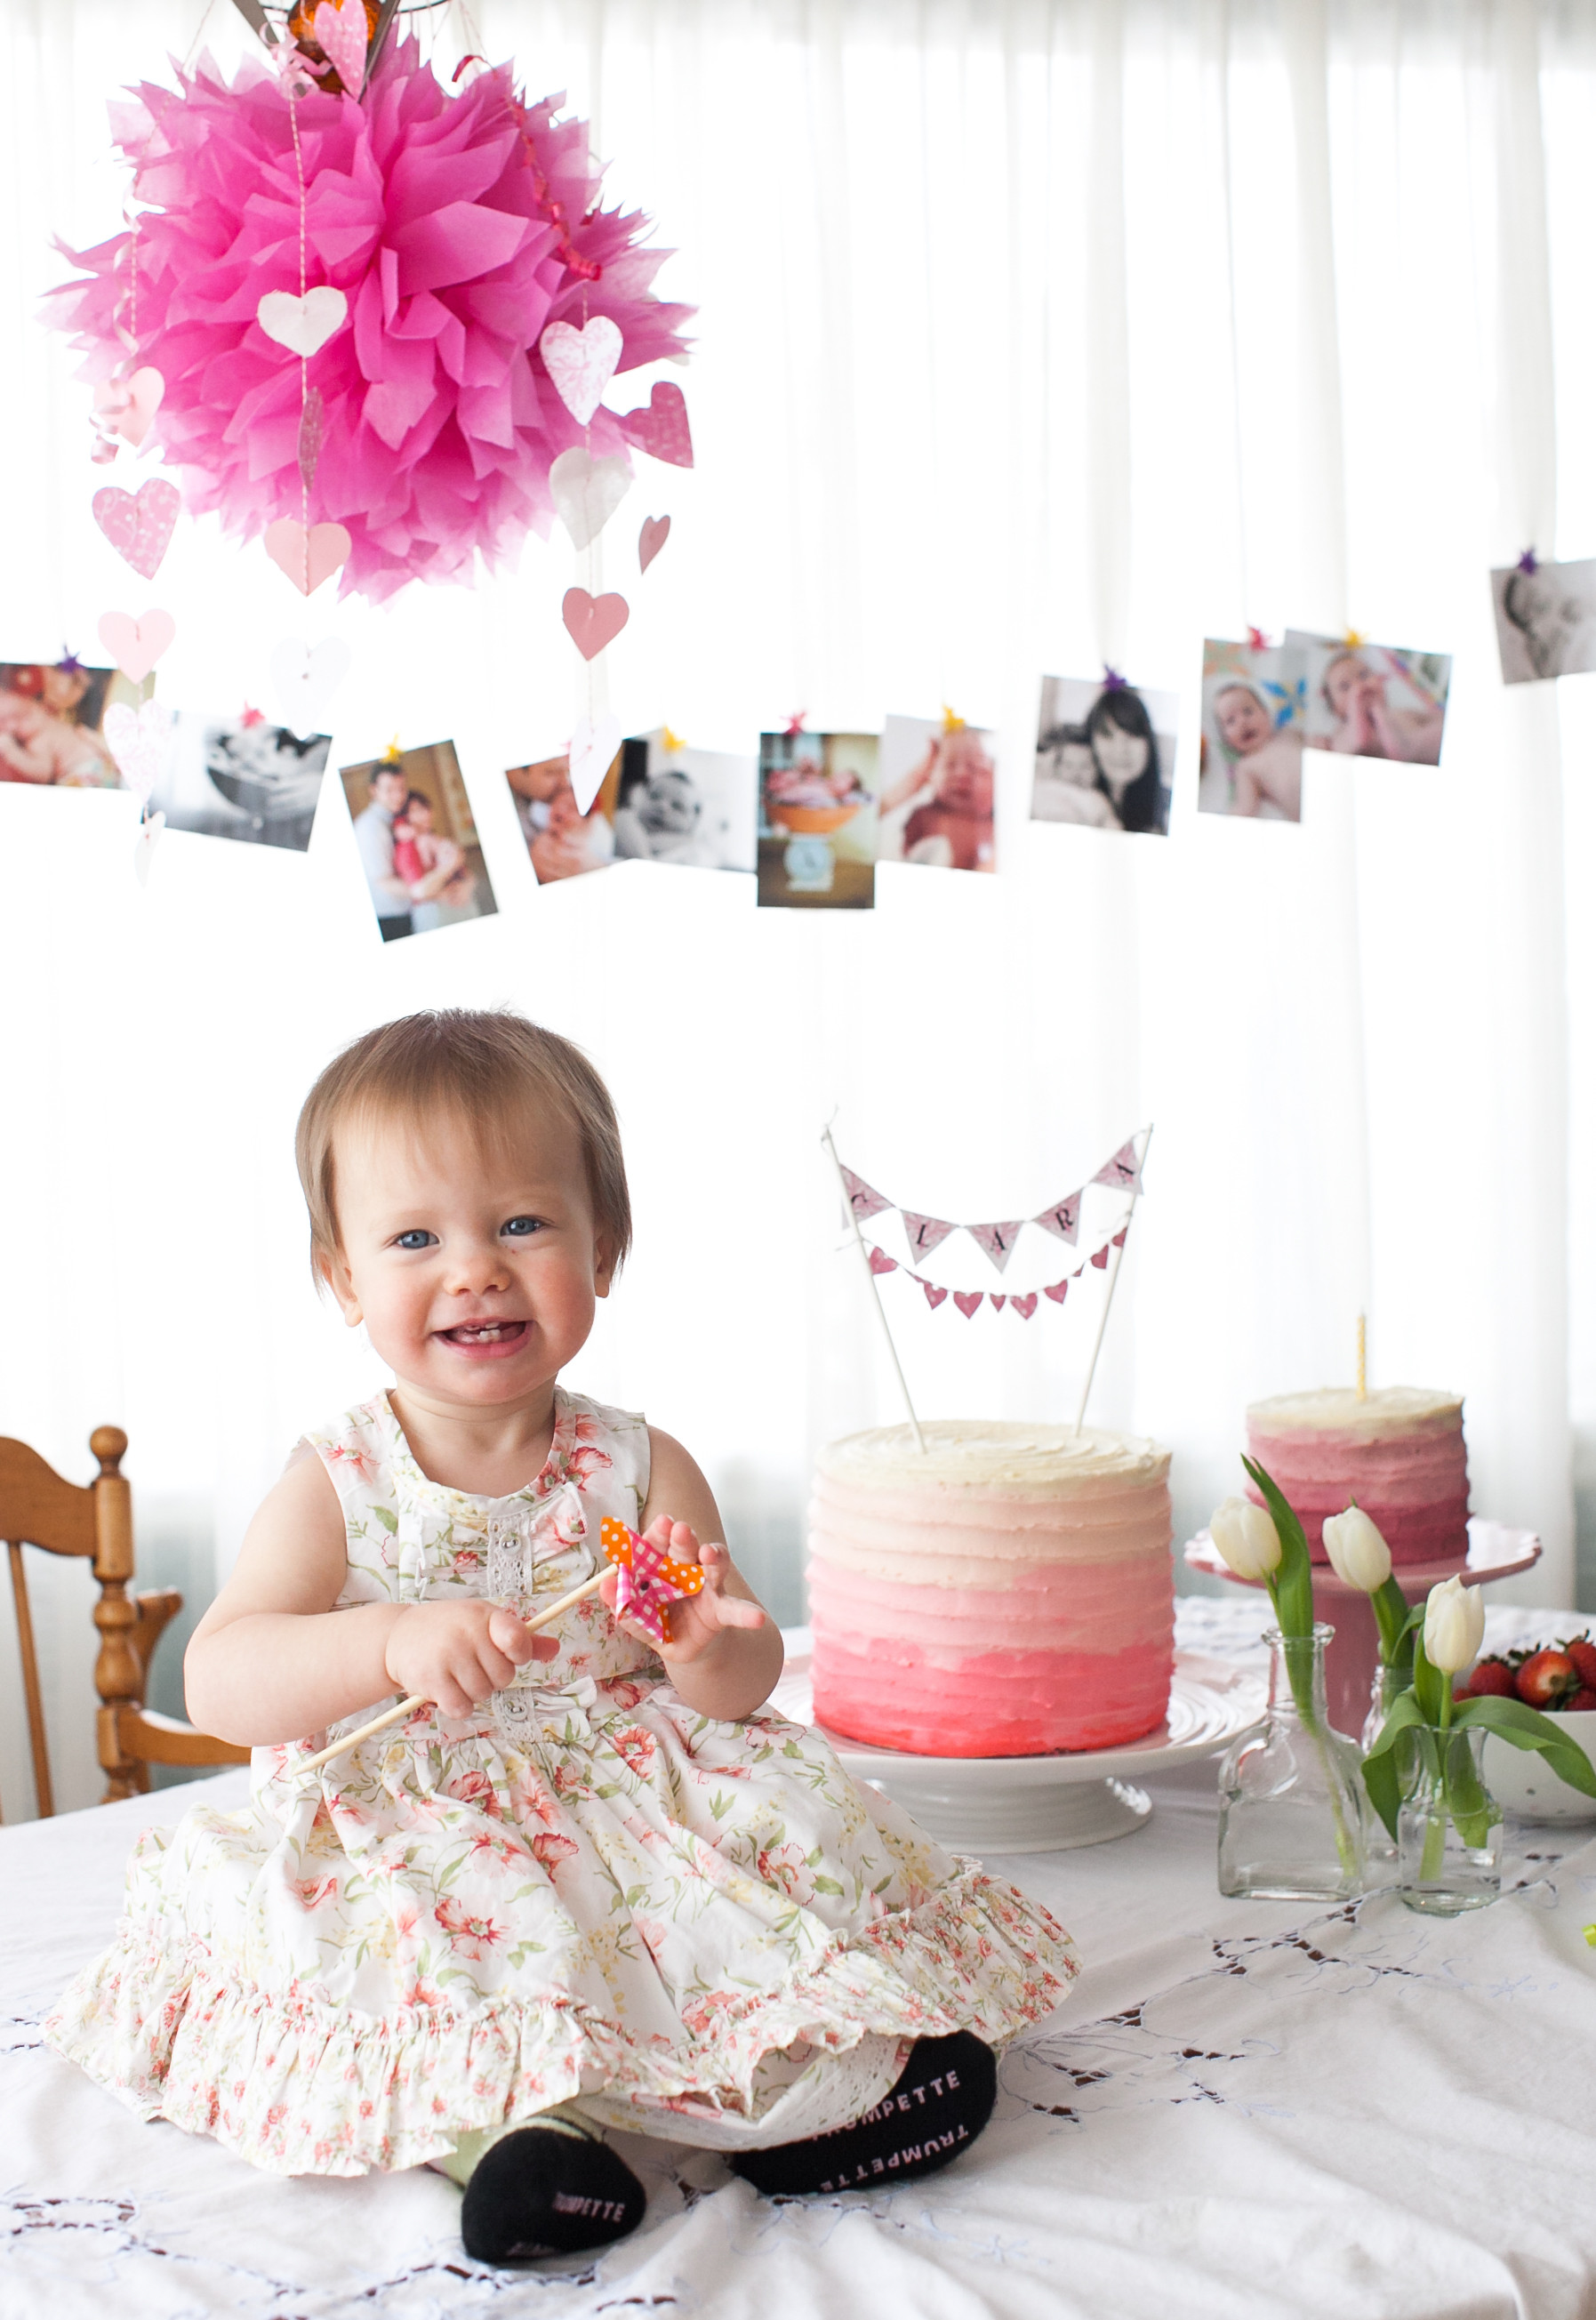 Best ideas about Baby First Birthday Decorations . Save or Pin First birthday party ideas recipe Apple Spice Cake with Now.